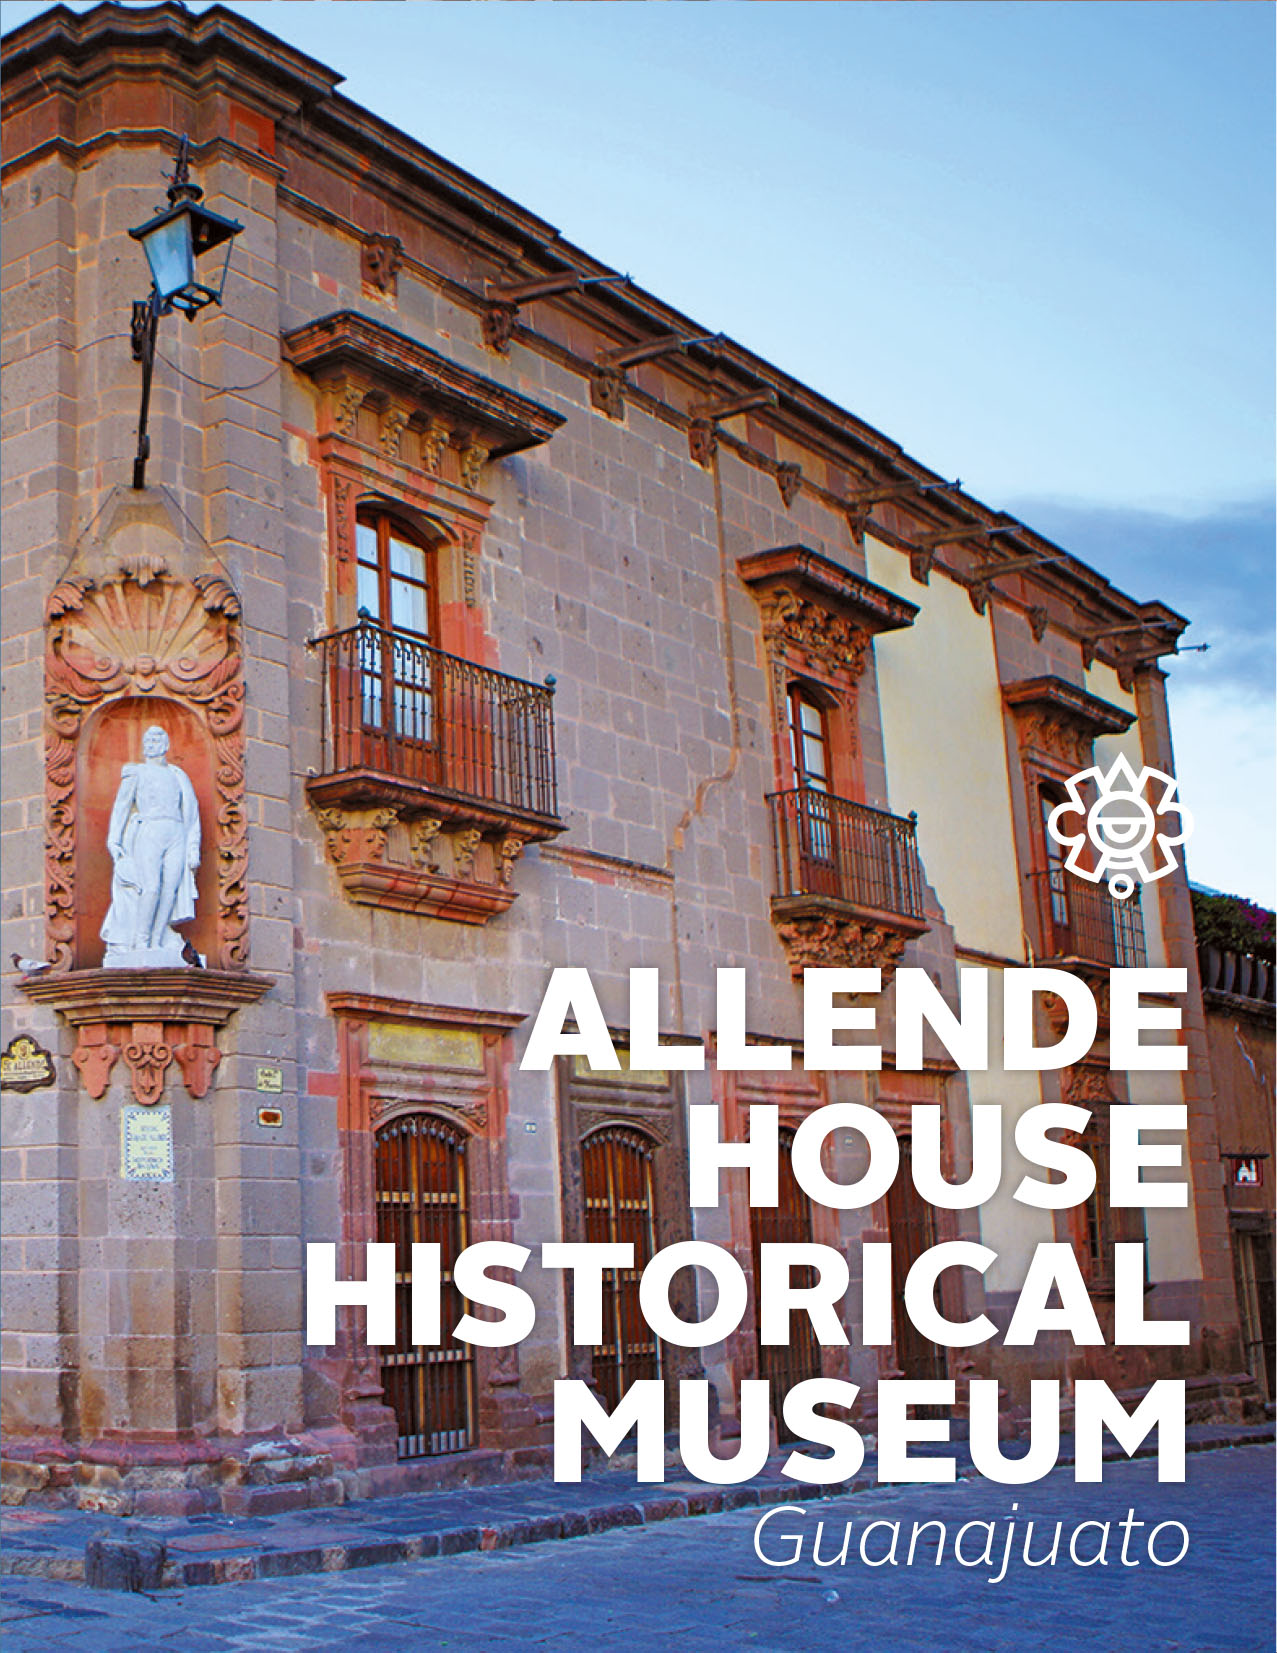 Allende House Historical Museum